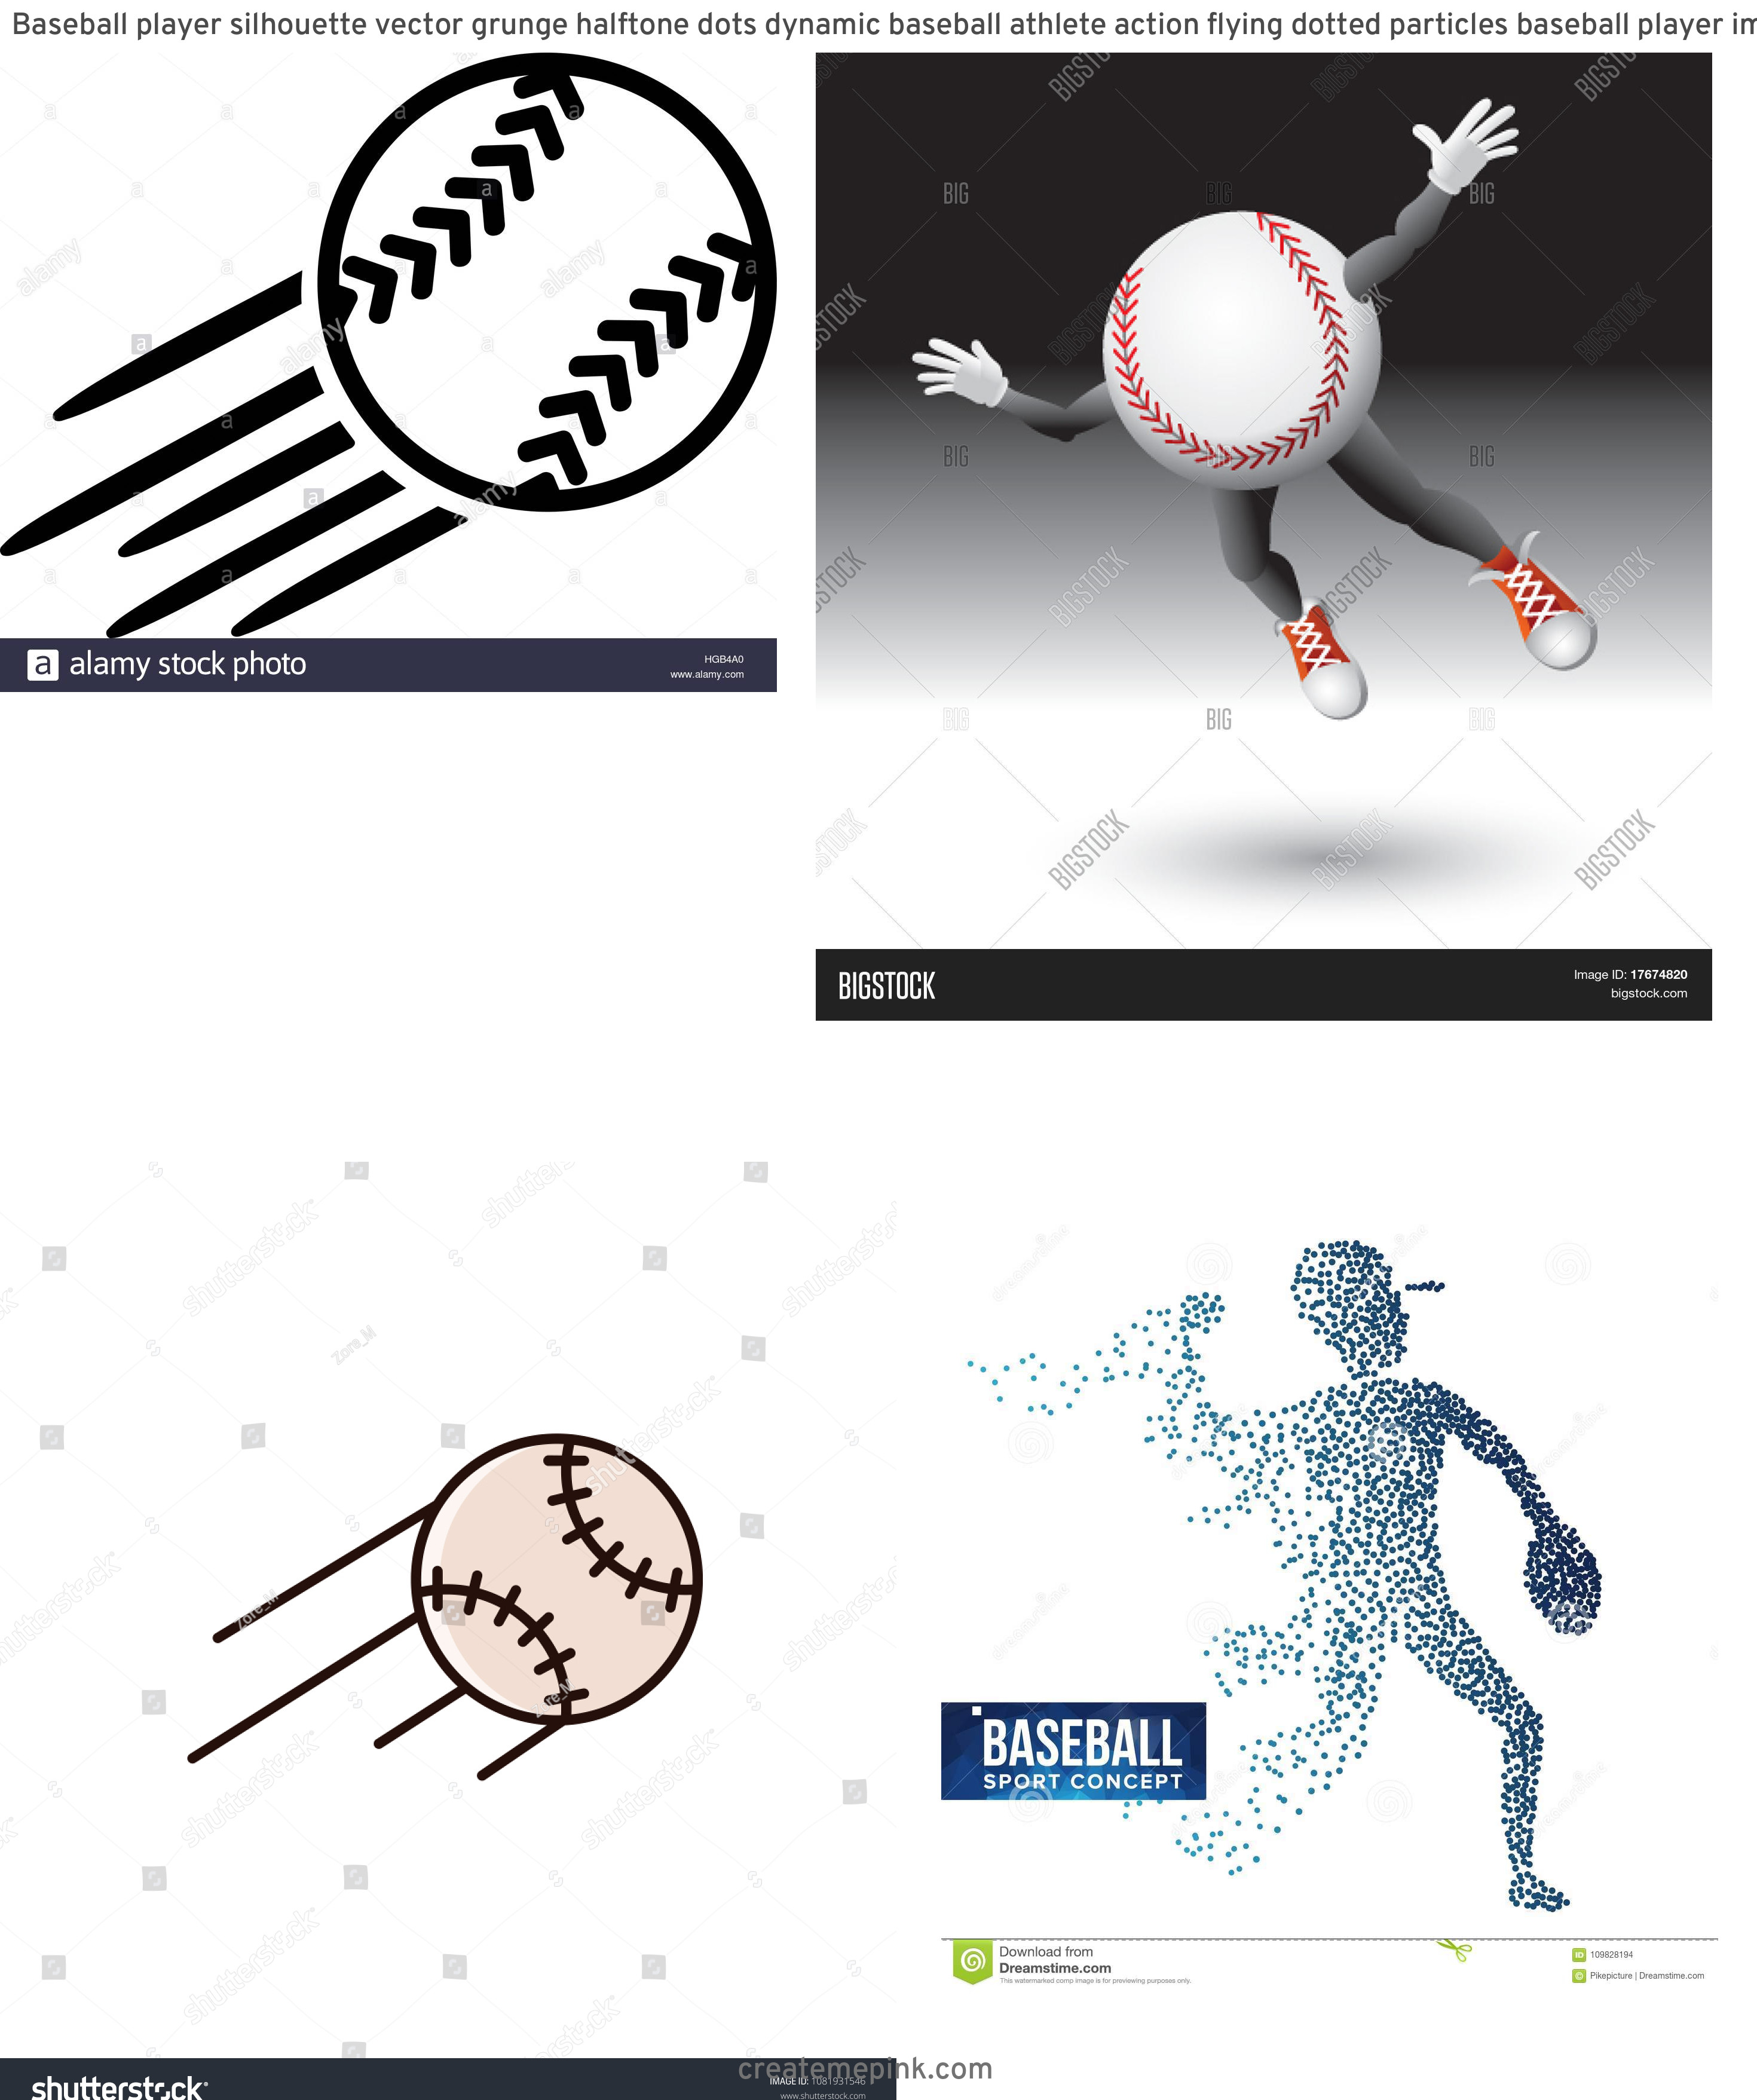 Flying Baseball Vector: Baseball Player Silhouette Vector Grunge Halftone Dots Dynamic Baseball Athlete Action Flying Dotted Particles Baseball Player Image